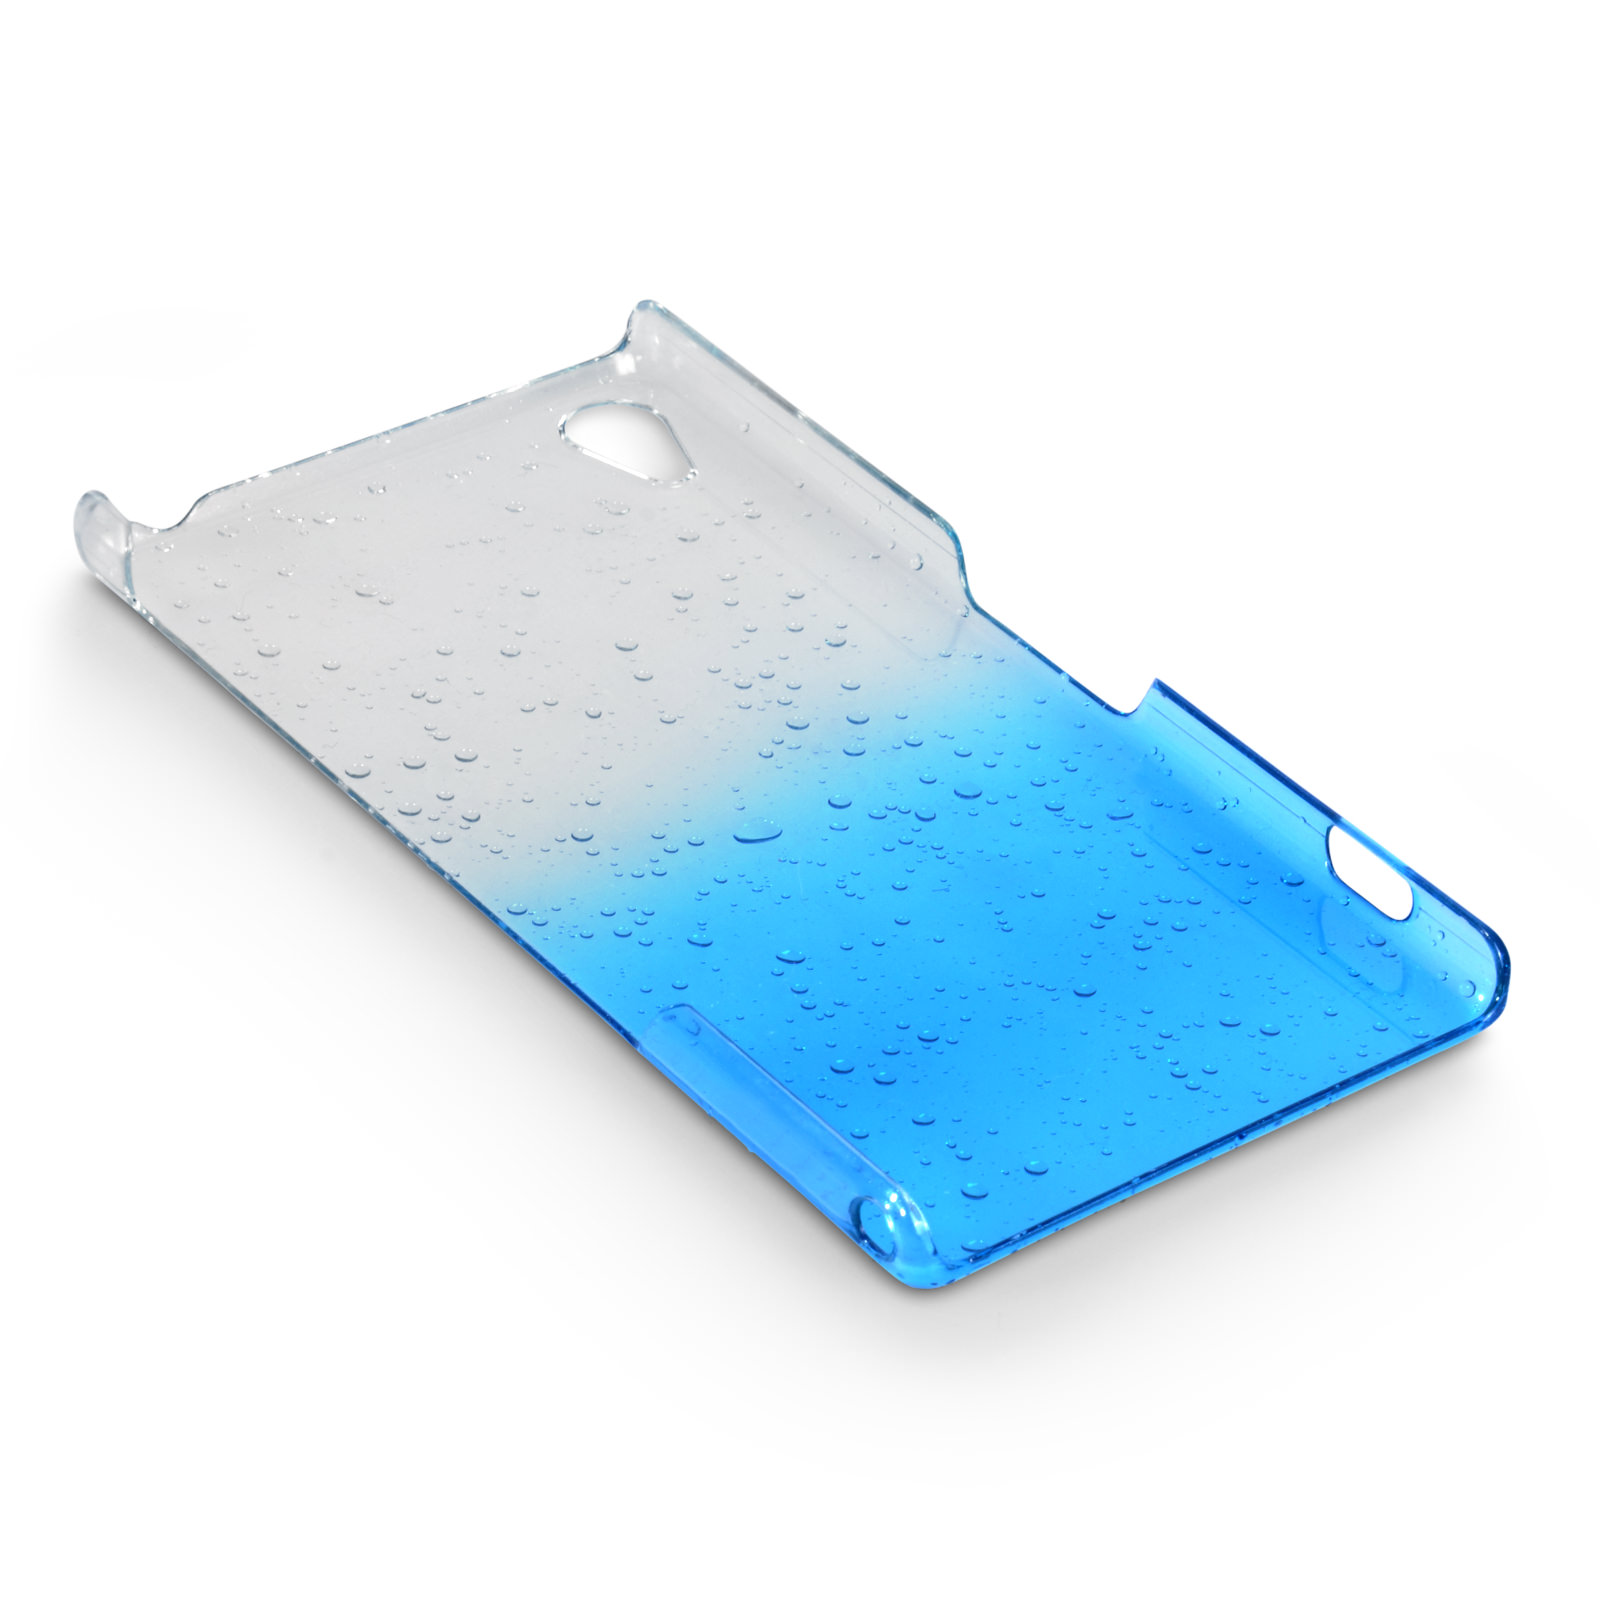 YouSave Accessories Sony Xperia Z2 Raindrop Hard Case - Blue-Clear